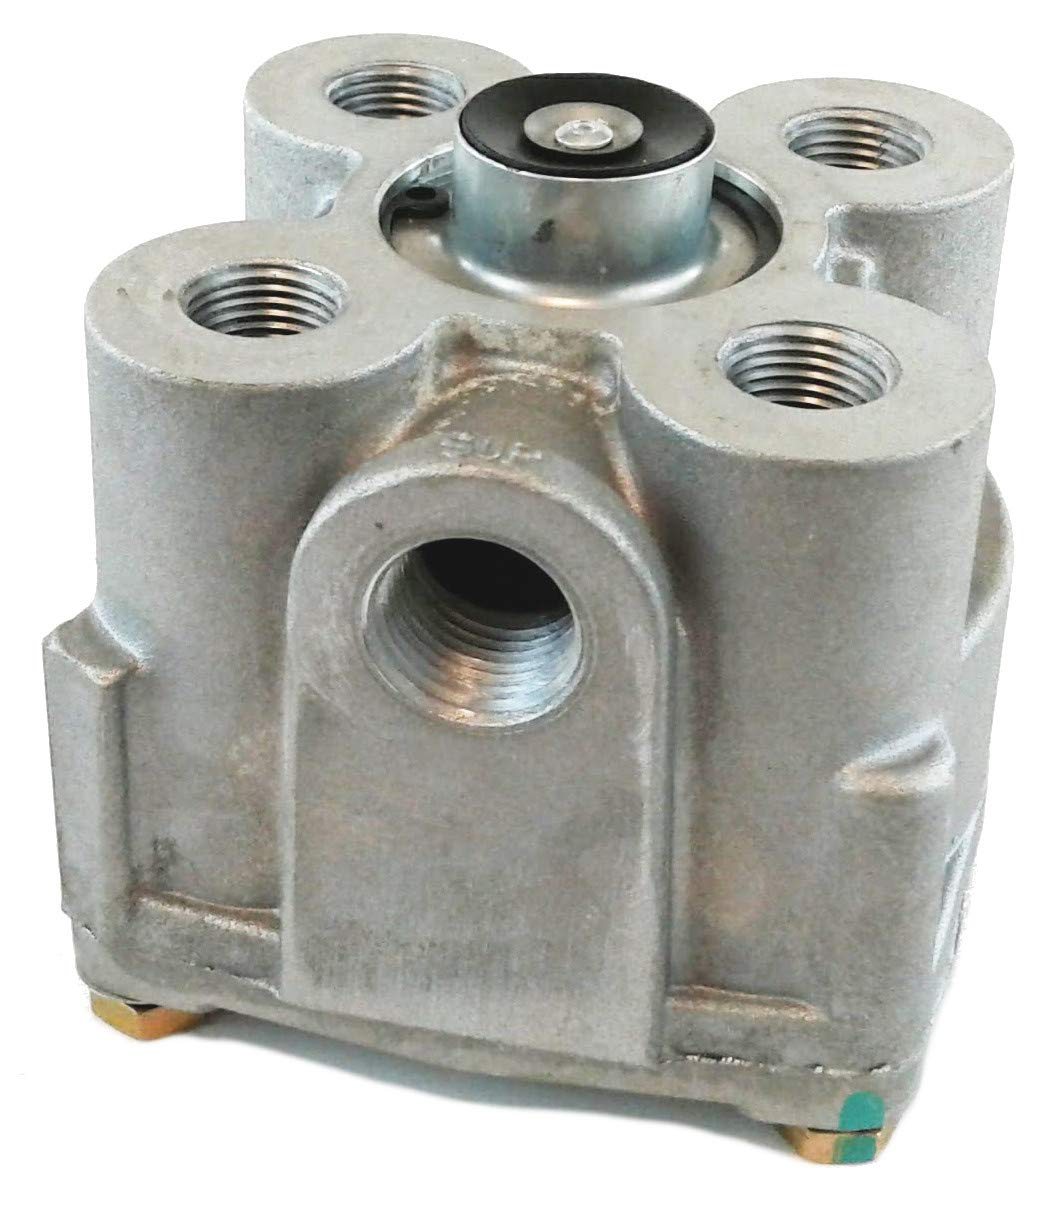 R-12 Relay Brake Valve - 3/8'' Delivery for Heavy Duty Big Rigs